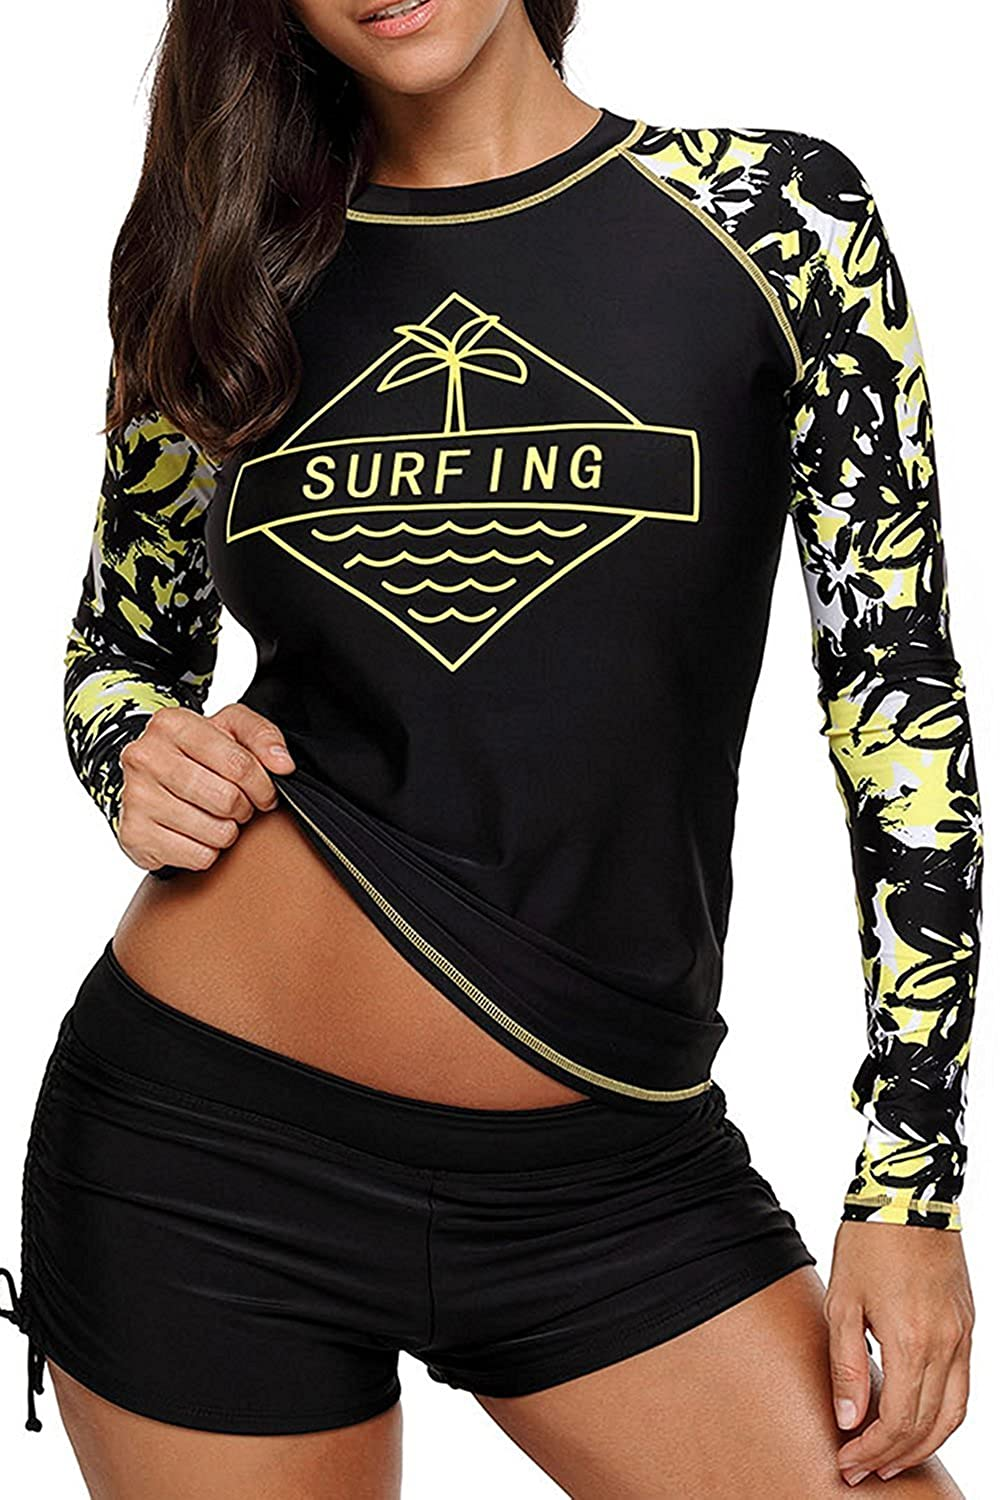 Black Surfing Anmengte 2 Pcs Women's Swimsuit Rash Guard Long Sleeve Tankini UV Sun Predection Athletic Cover up Swimwear